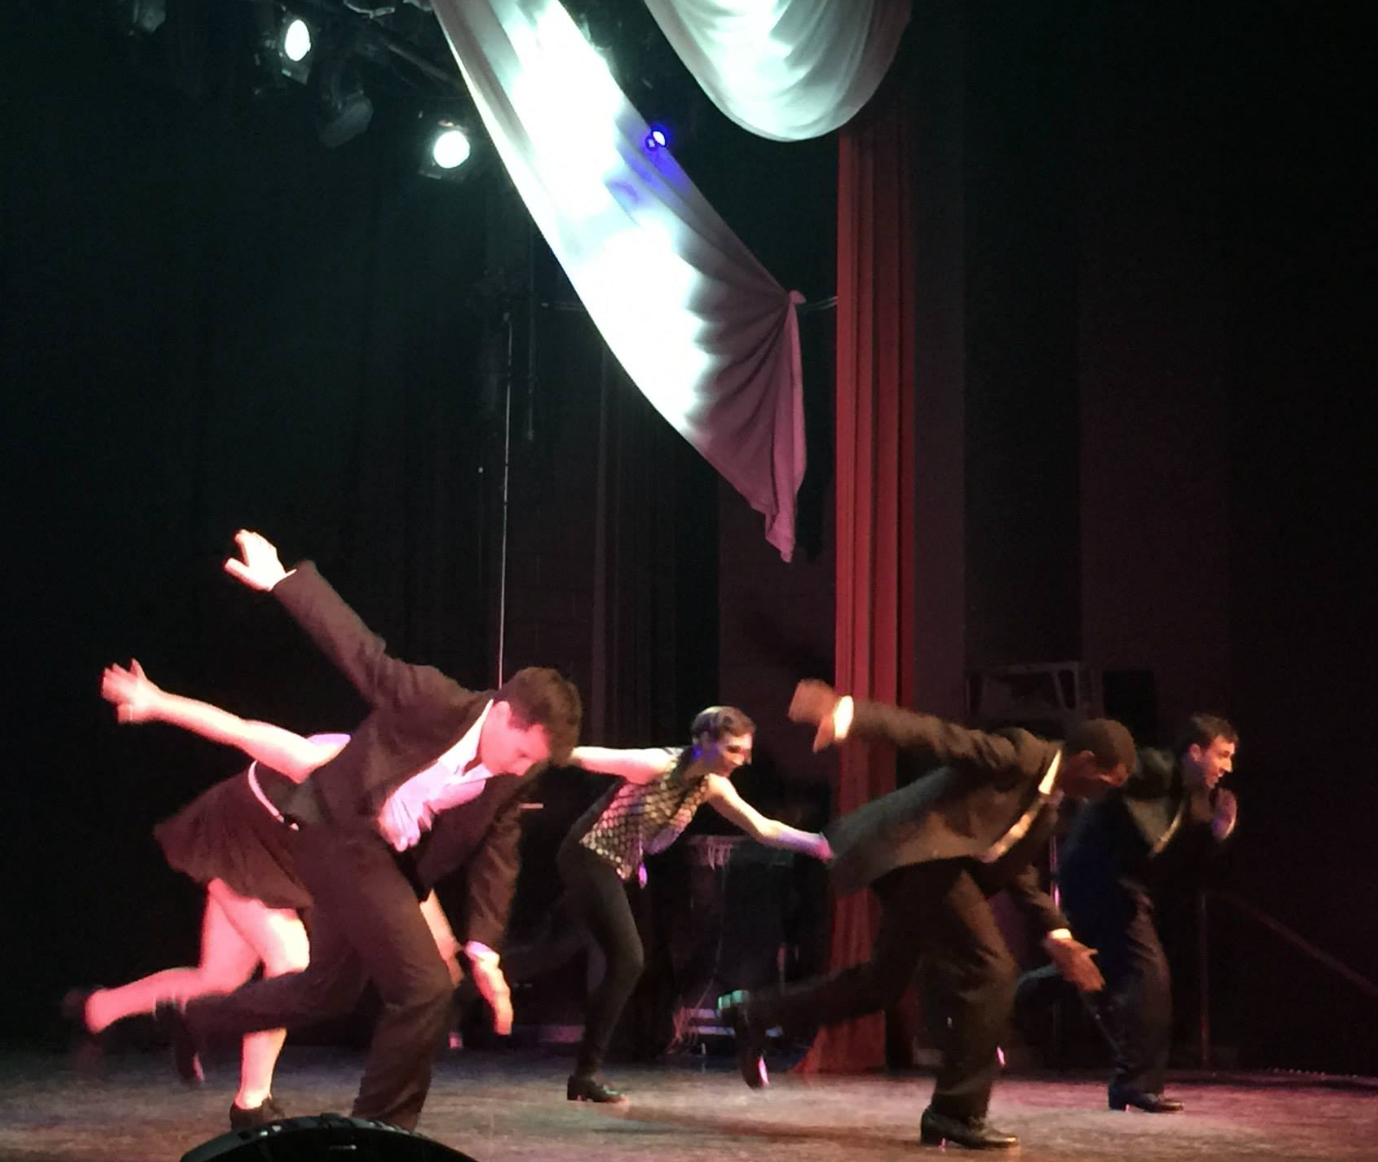 Dancers from the Chicago Human Rhythm Project perform